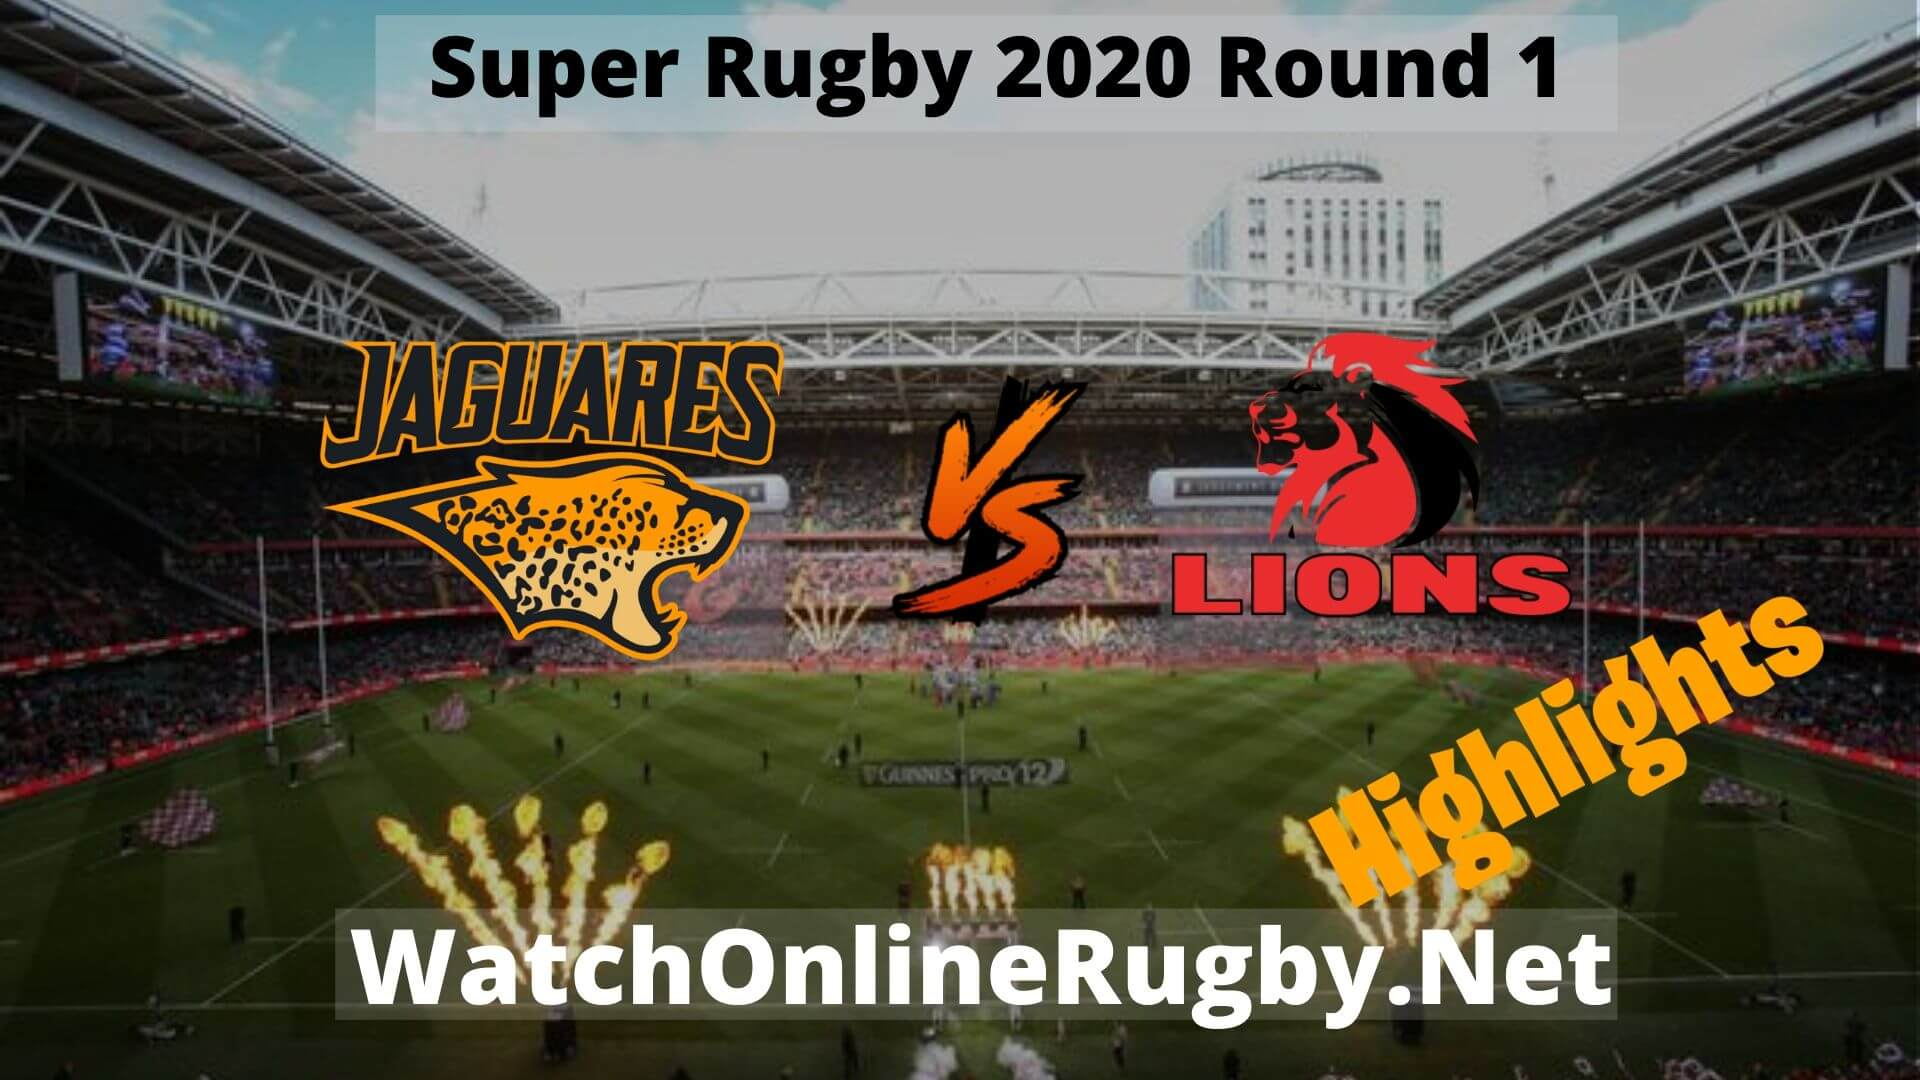 Lions Vs Jaguares Highlights Super Rugby 2020 Round 1